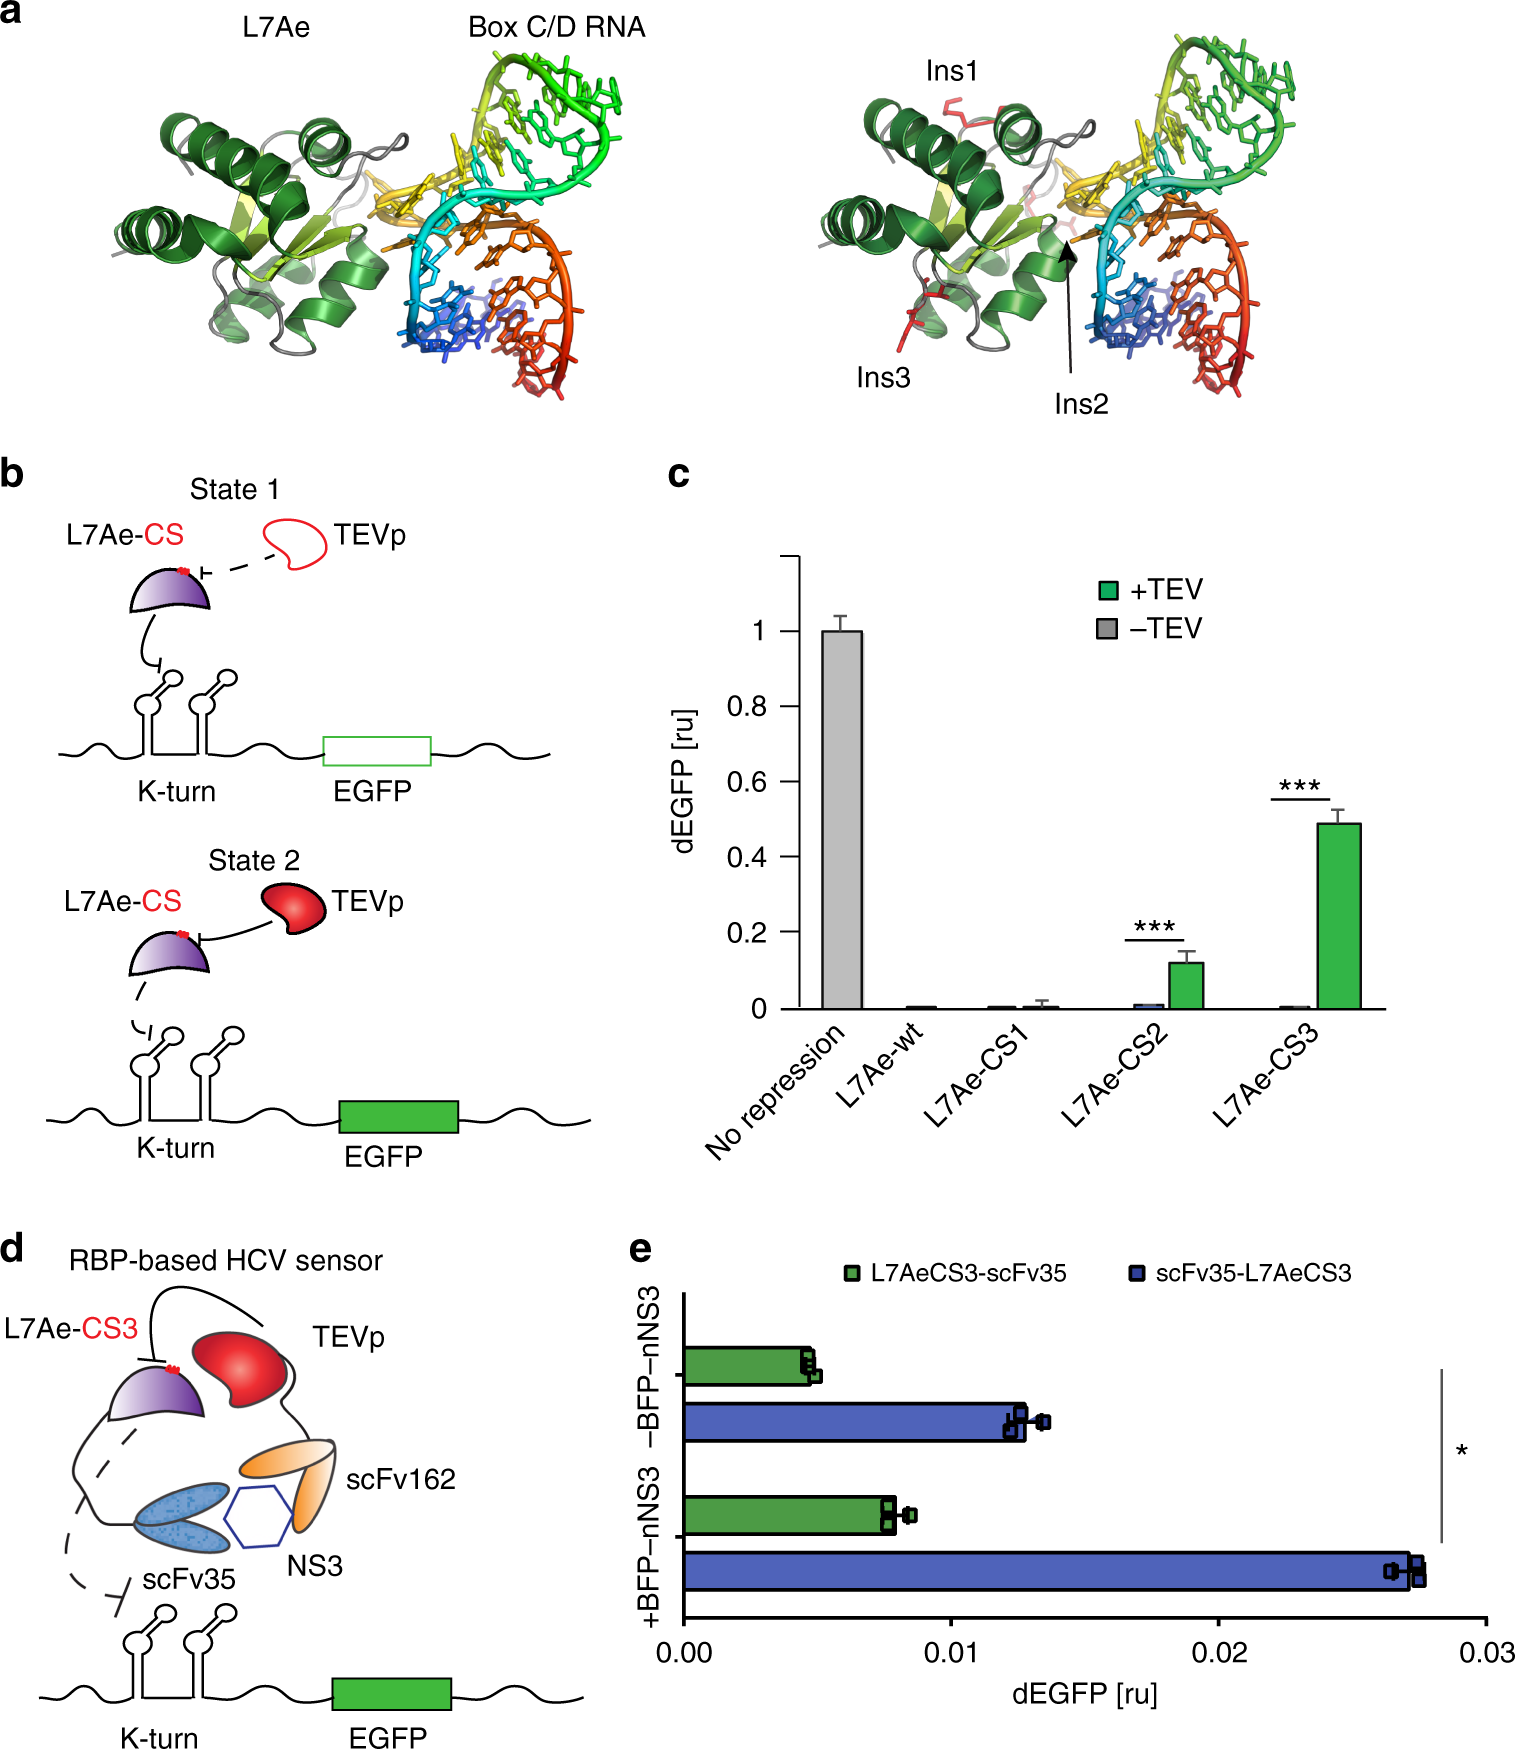 Engineering Protein Devices For Multilayered Regulation Of Translated Schematics Here Mrna Translation Using Orthogonal Proteases In Mammalian Cells Nature Communications